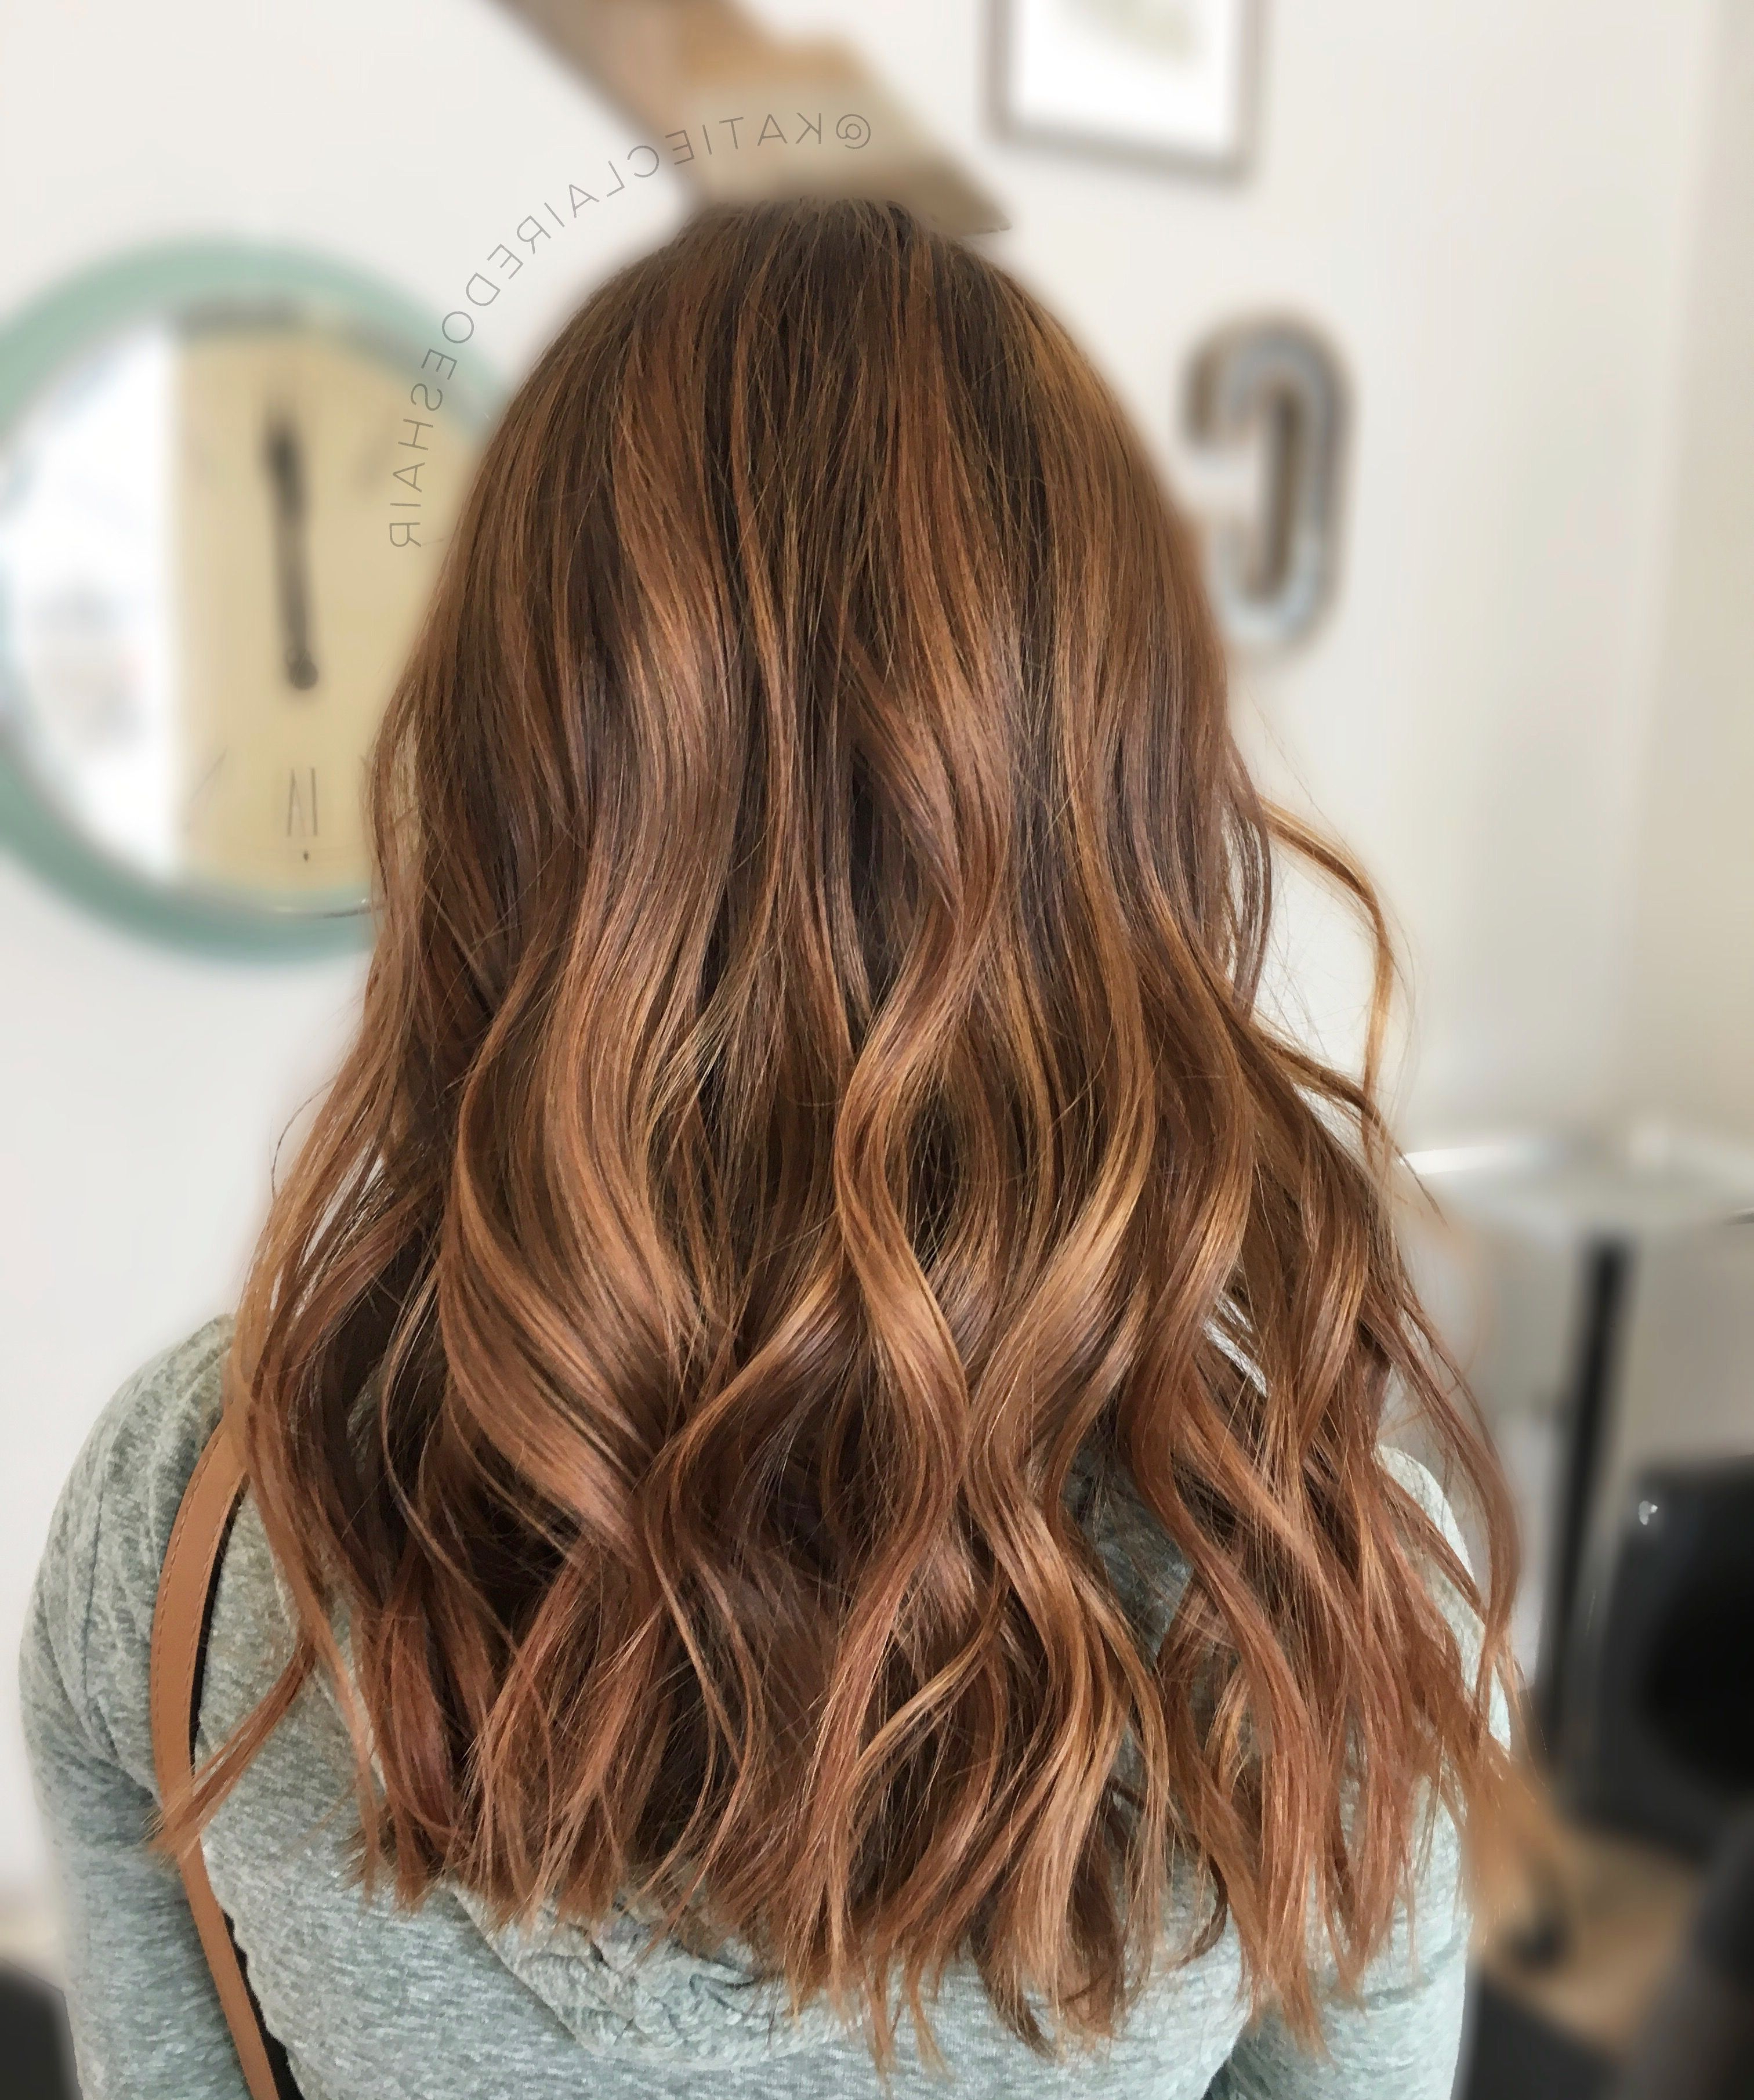 Caramel Balayage // Warm Brown // Balayage // Brown Balayage Intended For Well Known Warm Toned Brown Hairstyles With Caramel Balayage (Gallery 1 of 20)